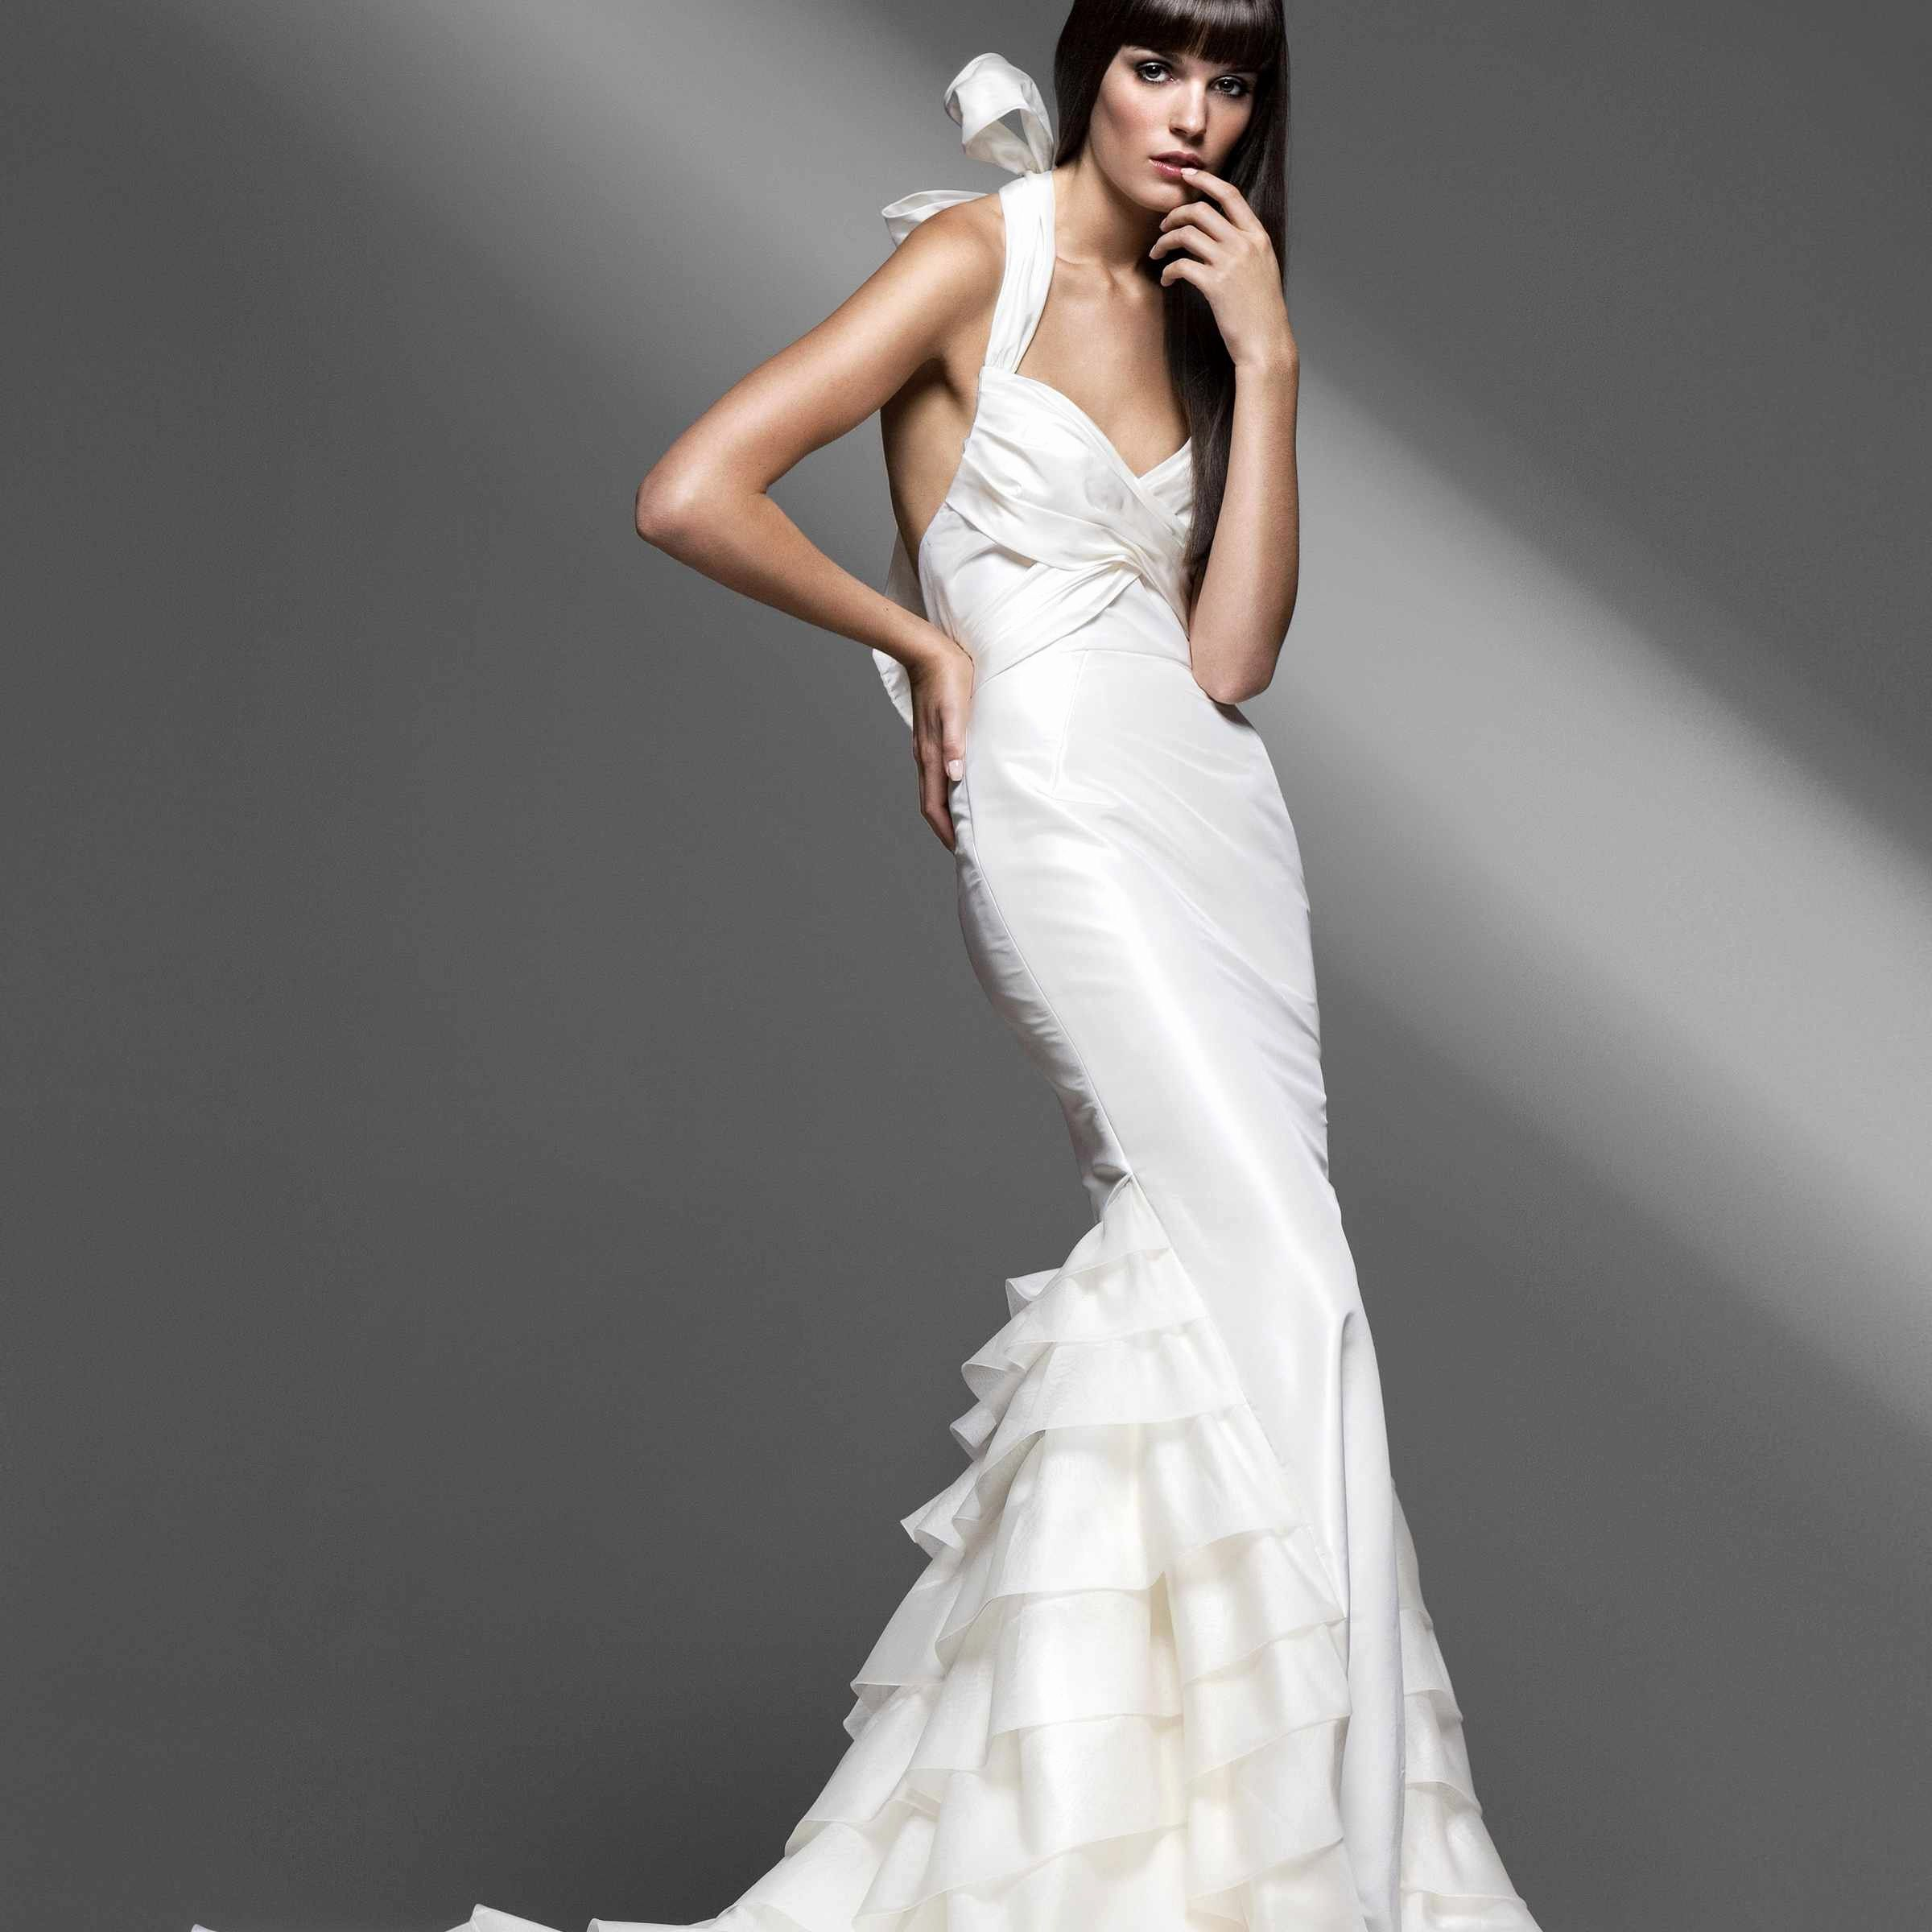 Second Hand Wedding Dress Shops Near Me Inspirational The Top Ten Bridal Stores In Brooklyn New Yor In 2020 Wedding Dresses Unique Wedding Dresses Online Wedding Dress